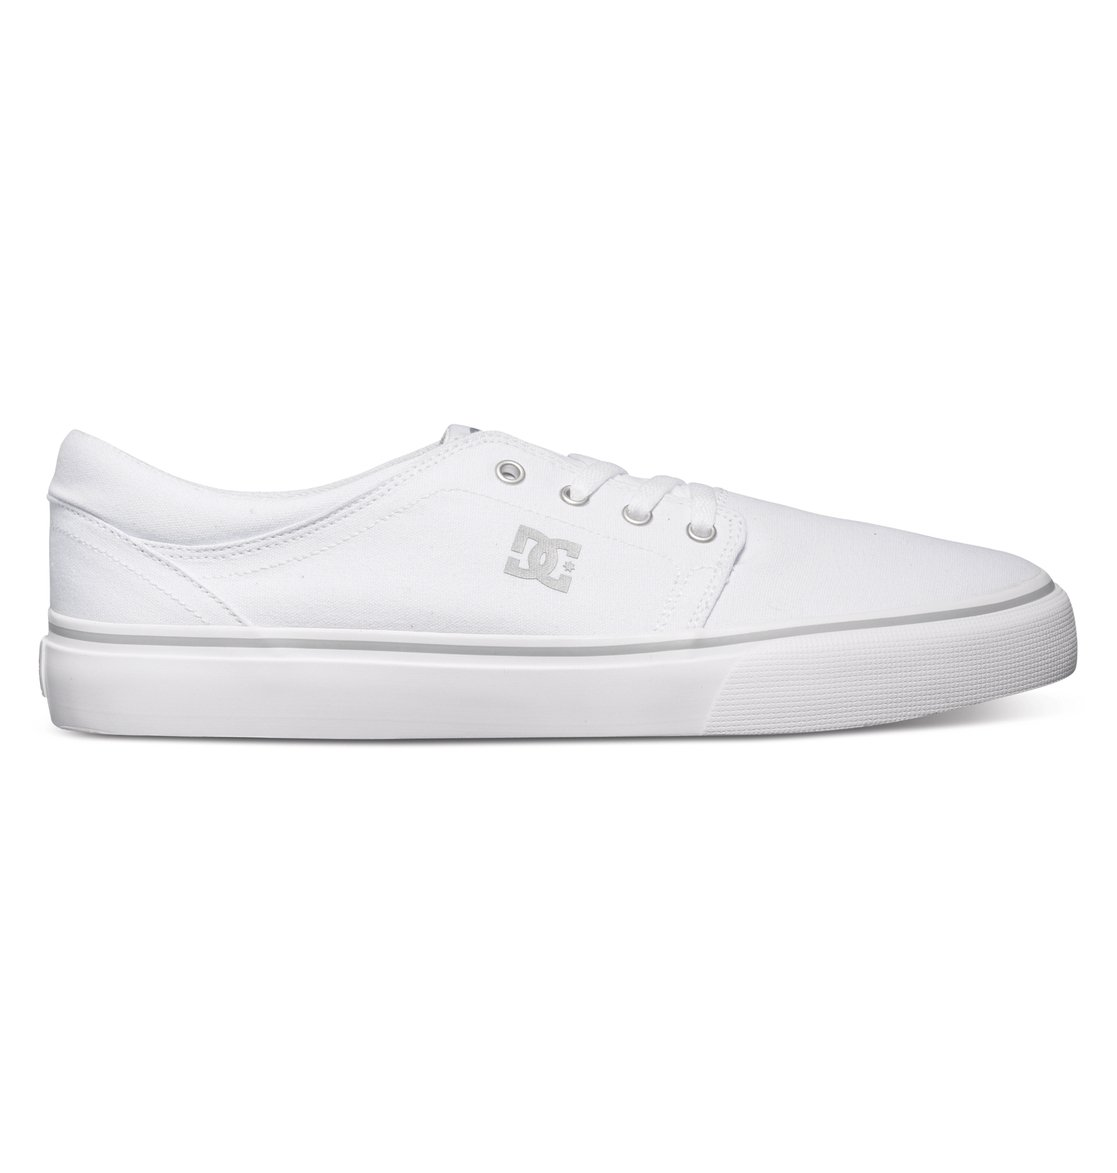 http://static.quiksilver.com/www/store.quiksilver.eu/html/images/catalogs/global/dcshoes-products/all/default/hi-res/adys300126_trasetx,p_wht_frt2.jpg